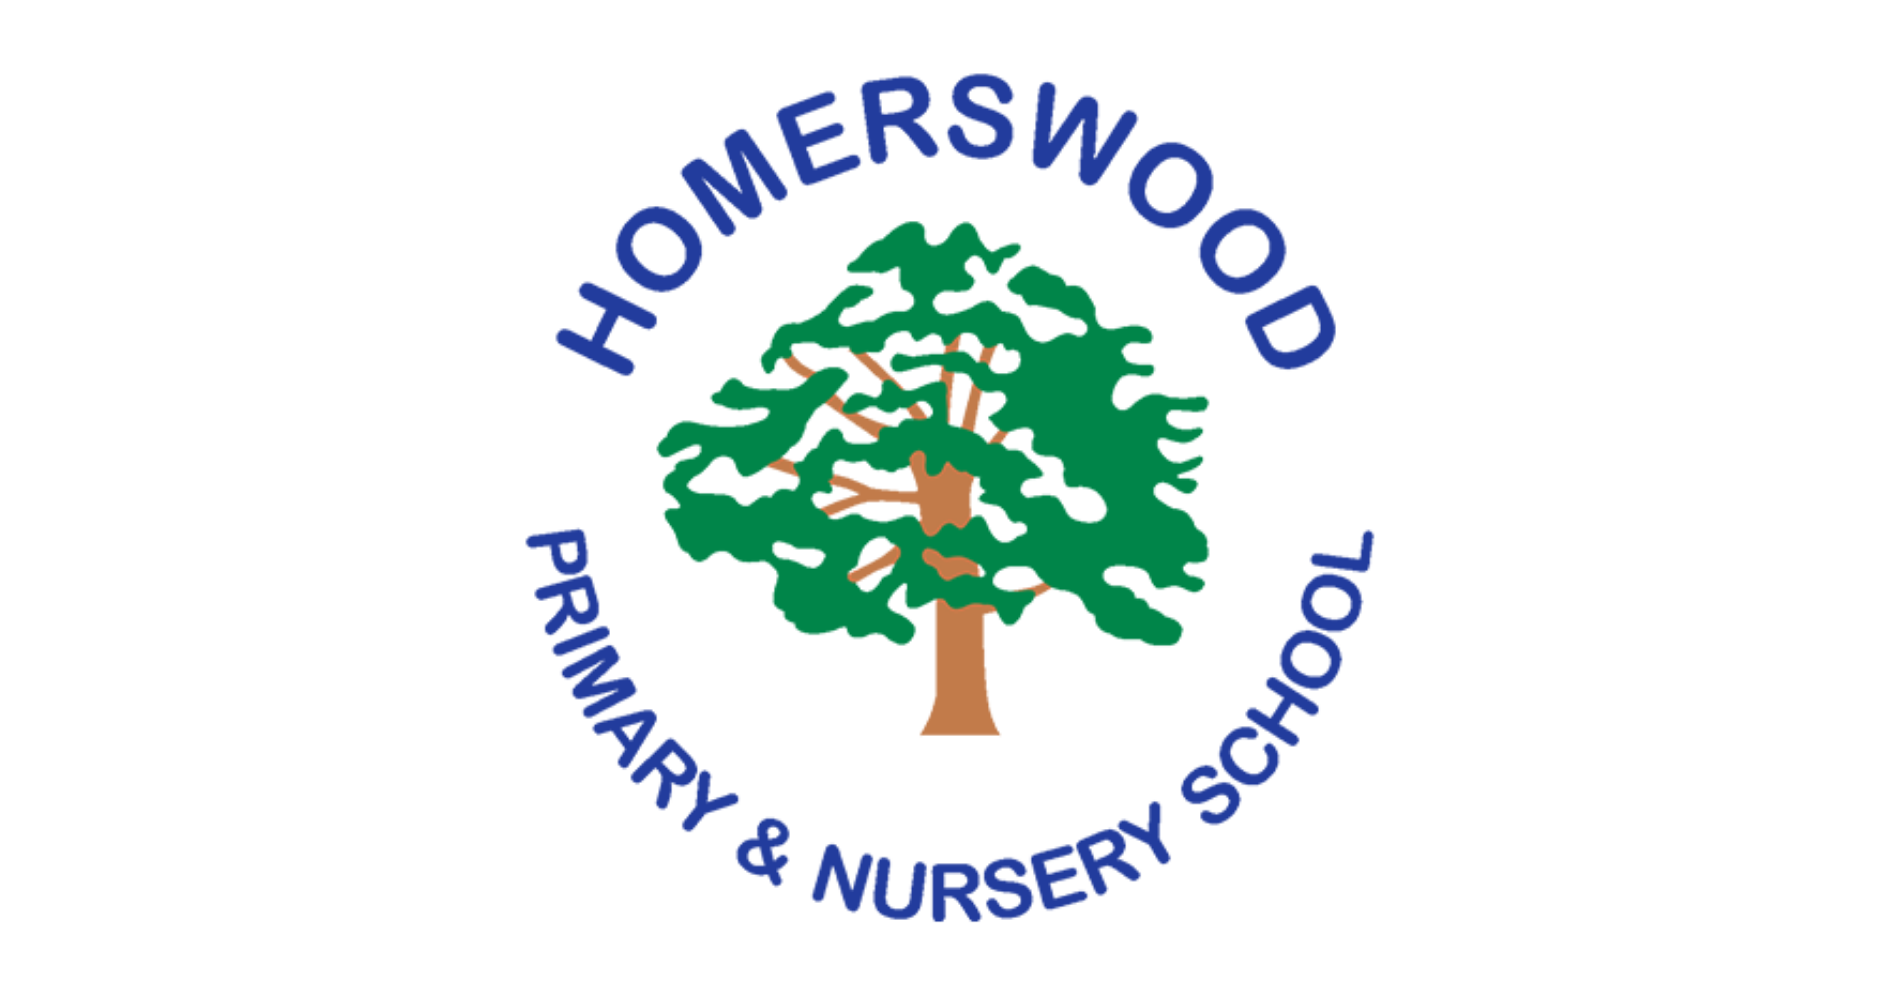 Homerswood Primary and Nursery School